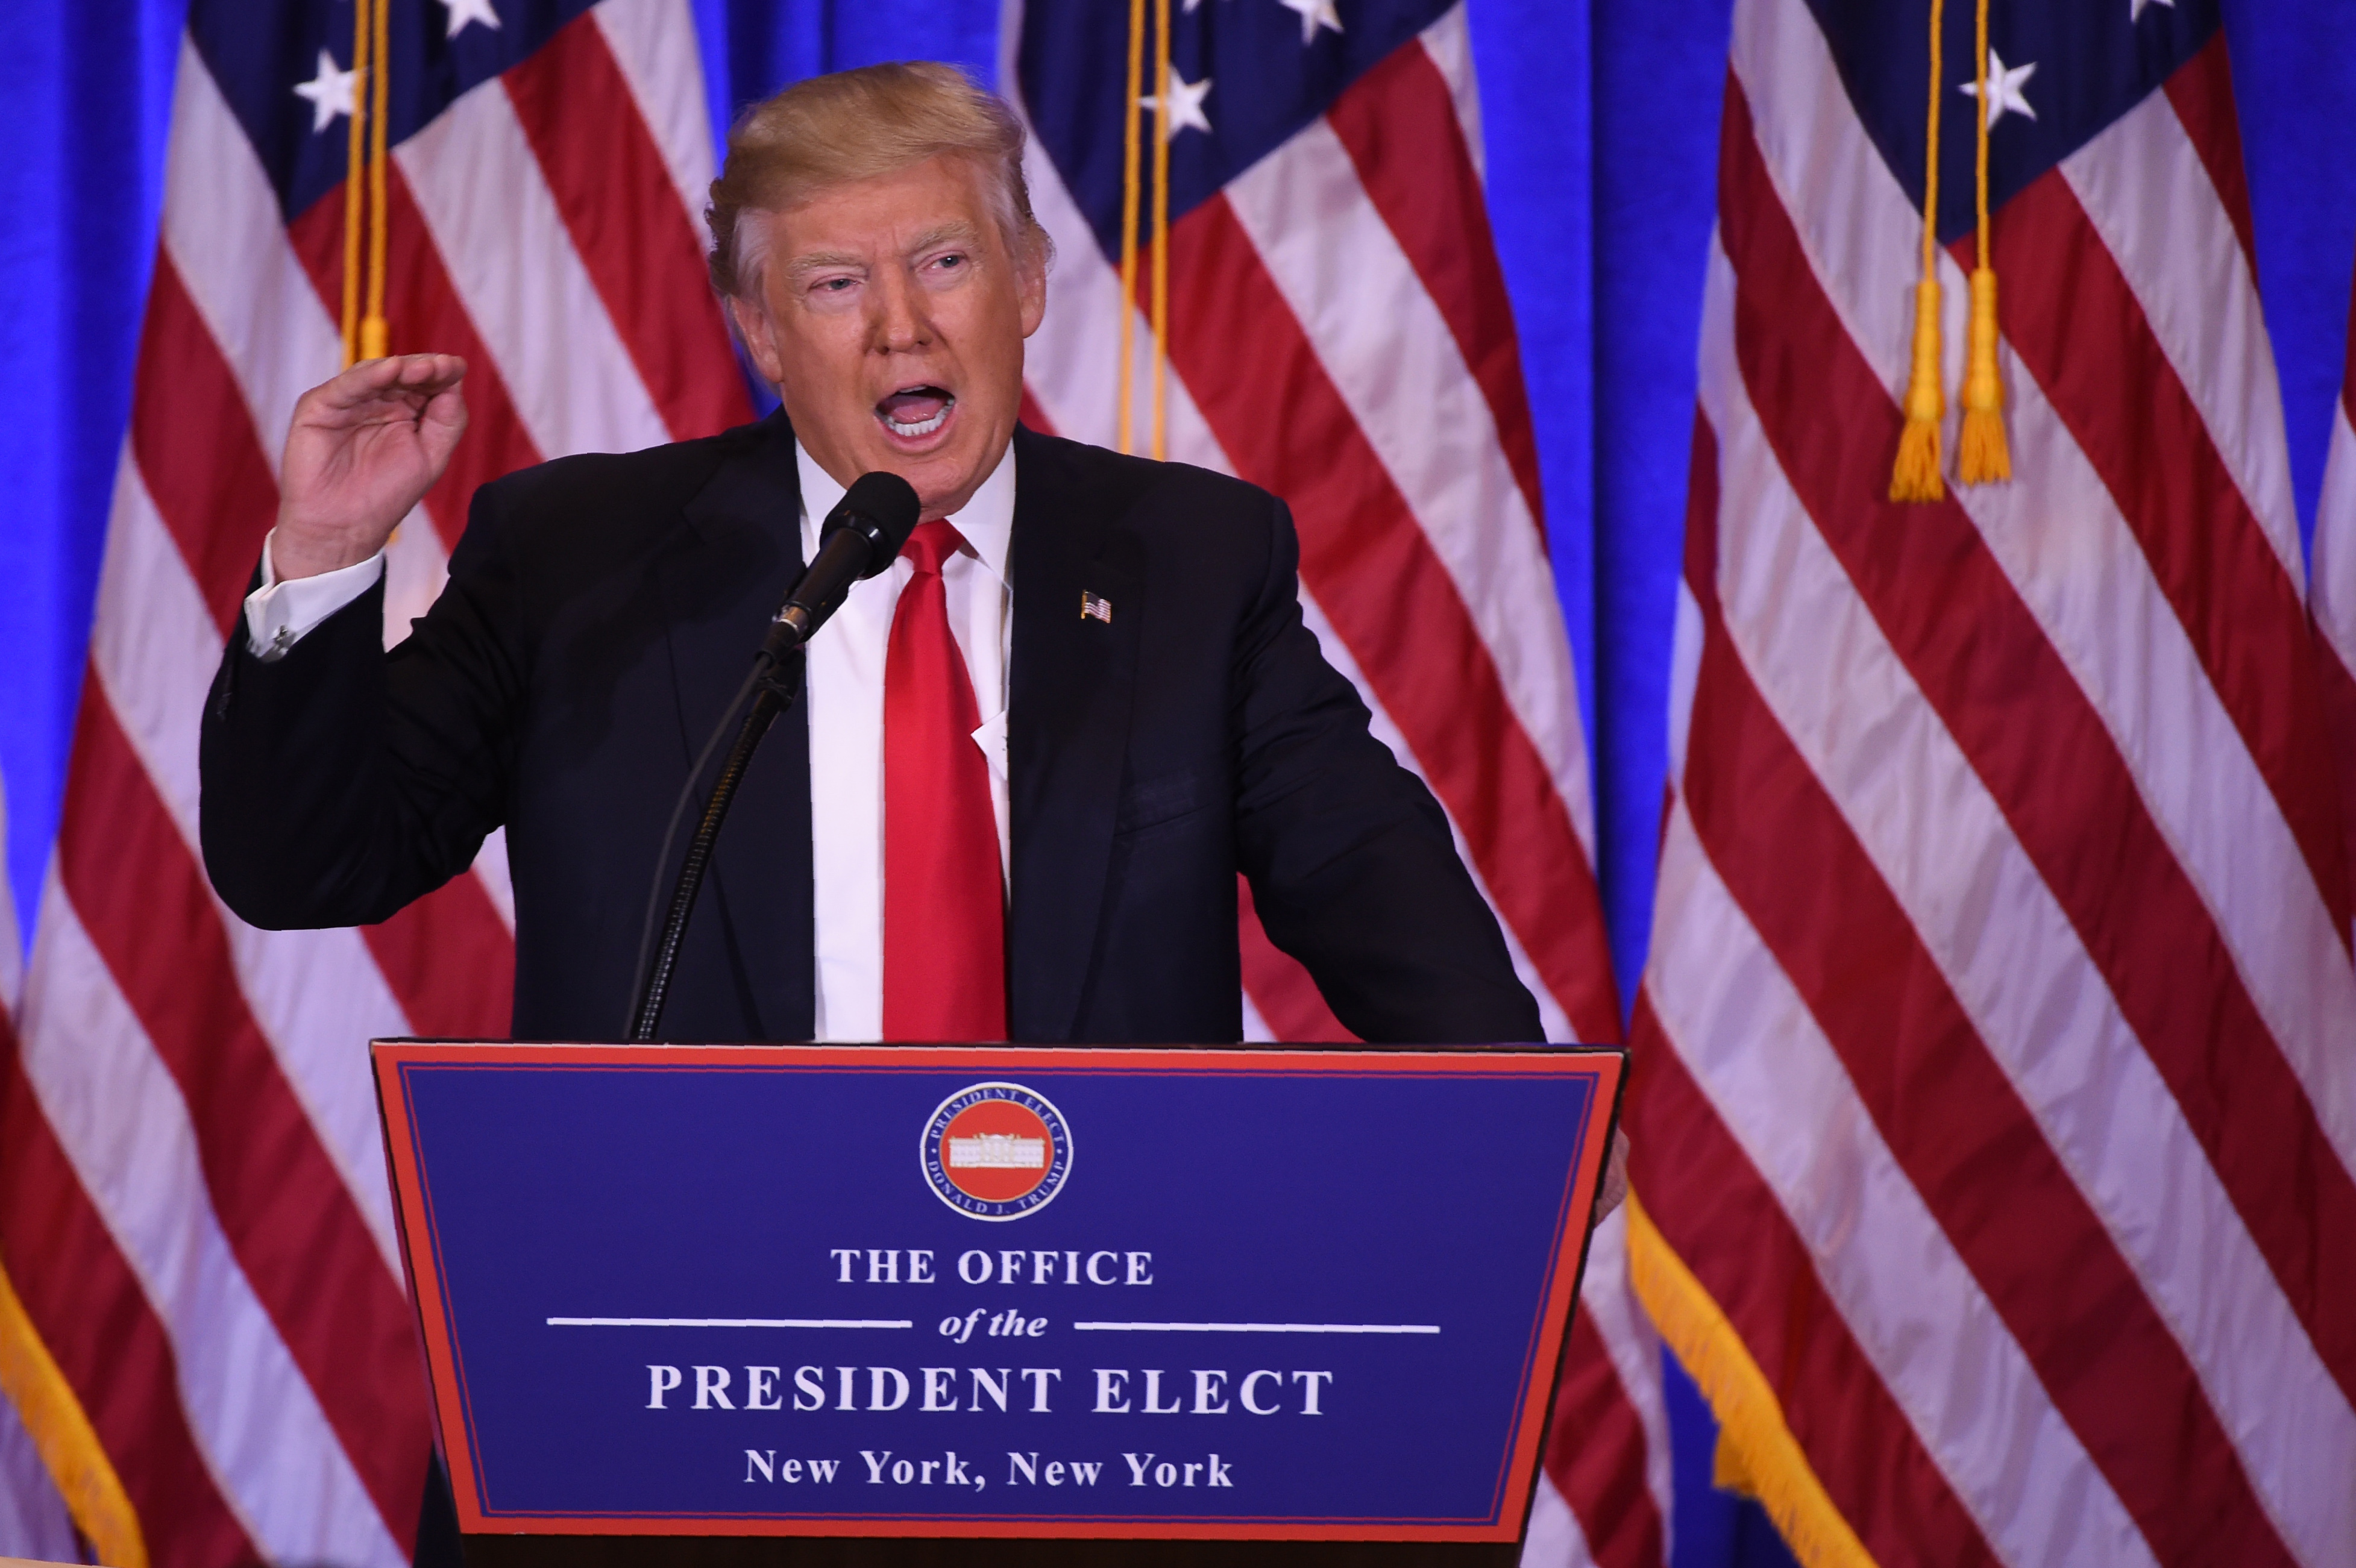 US President-elect Donald Trump gives a press conference January 11, 2017 in New York. Donald Trump is holding his first news conference in nearly six months Wednesday, amid explosive allegations over his ties to Russia, a little more than a week before his inauguration. / AFP PHOTO / DON EMMERT